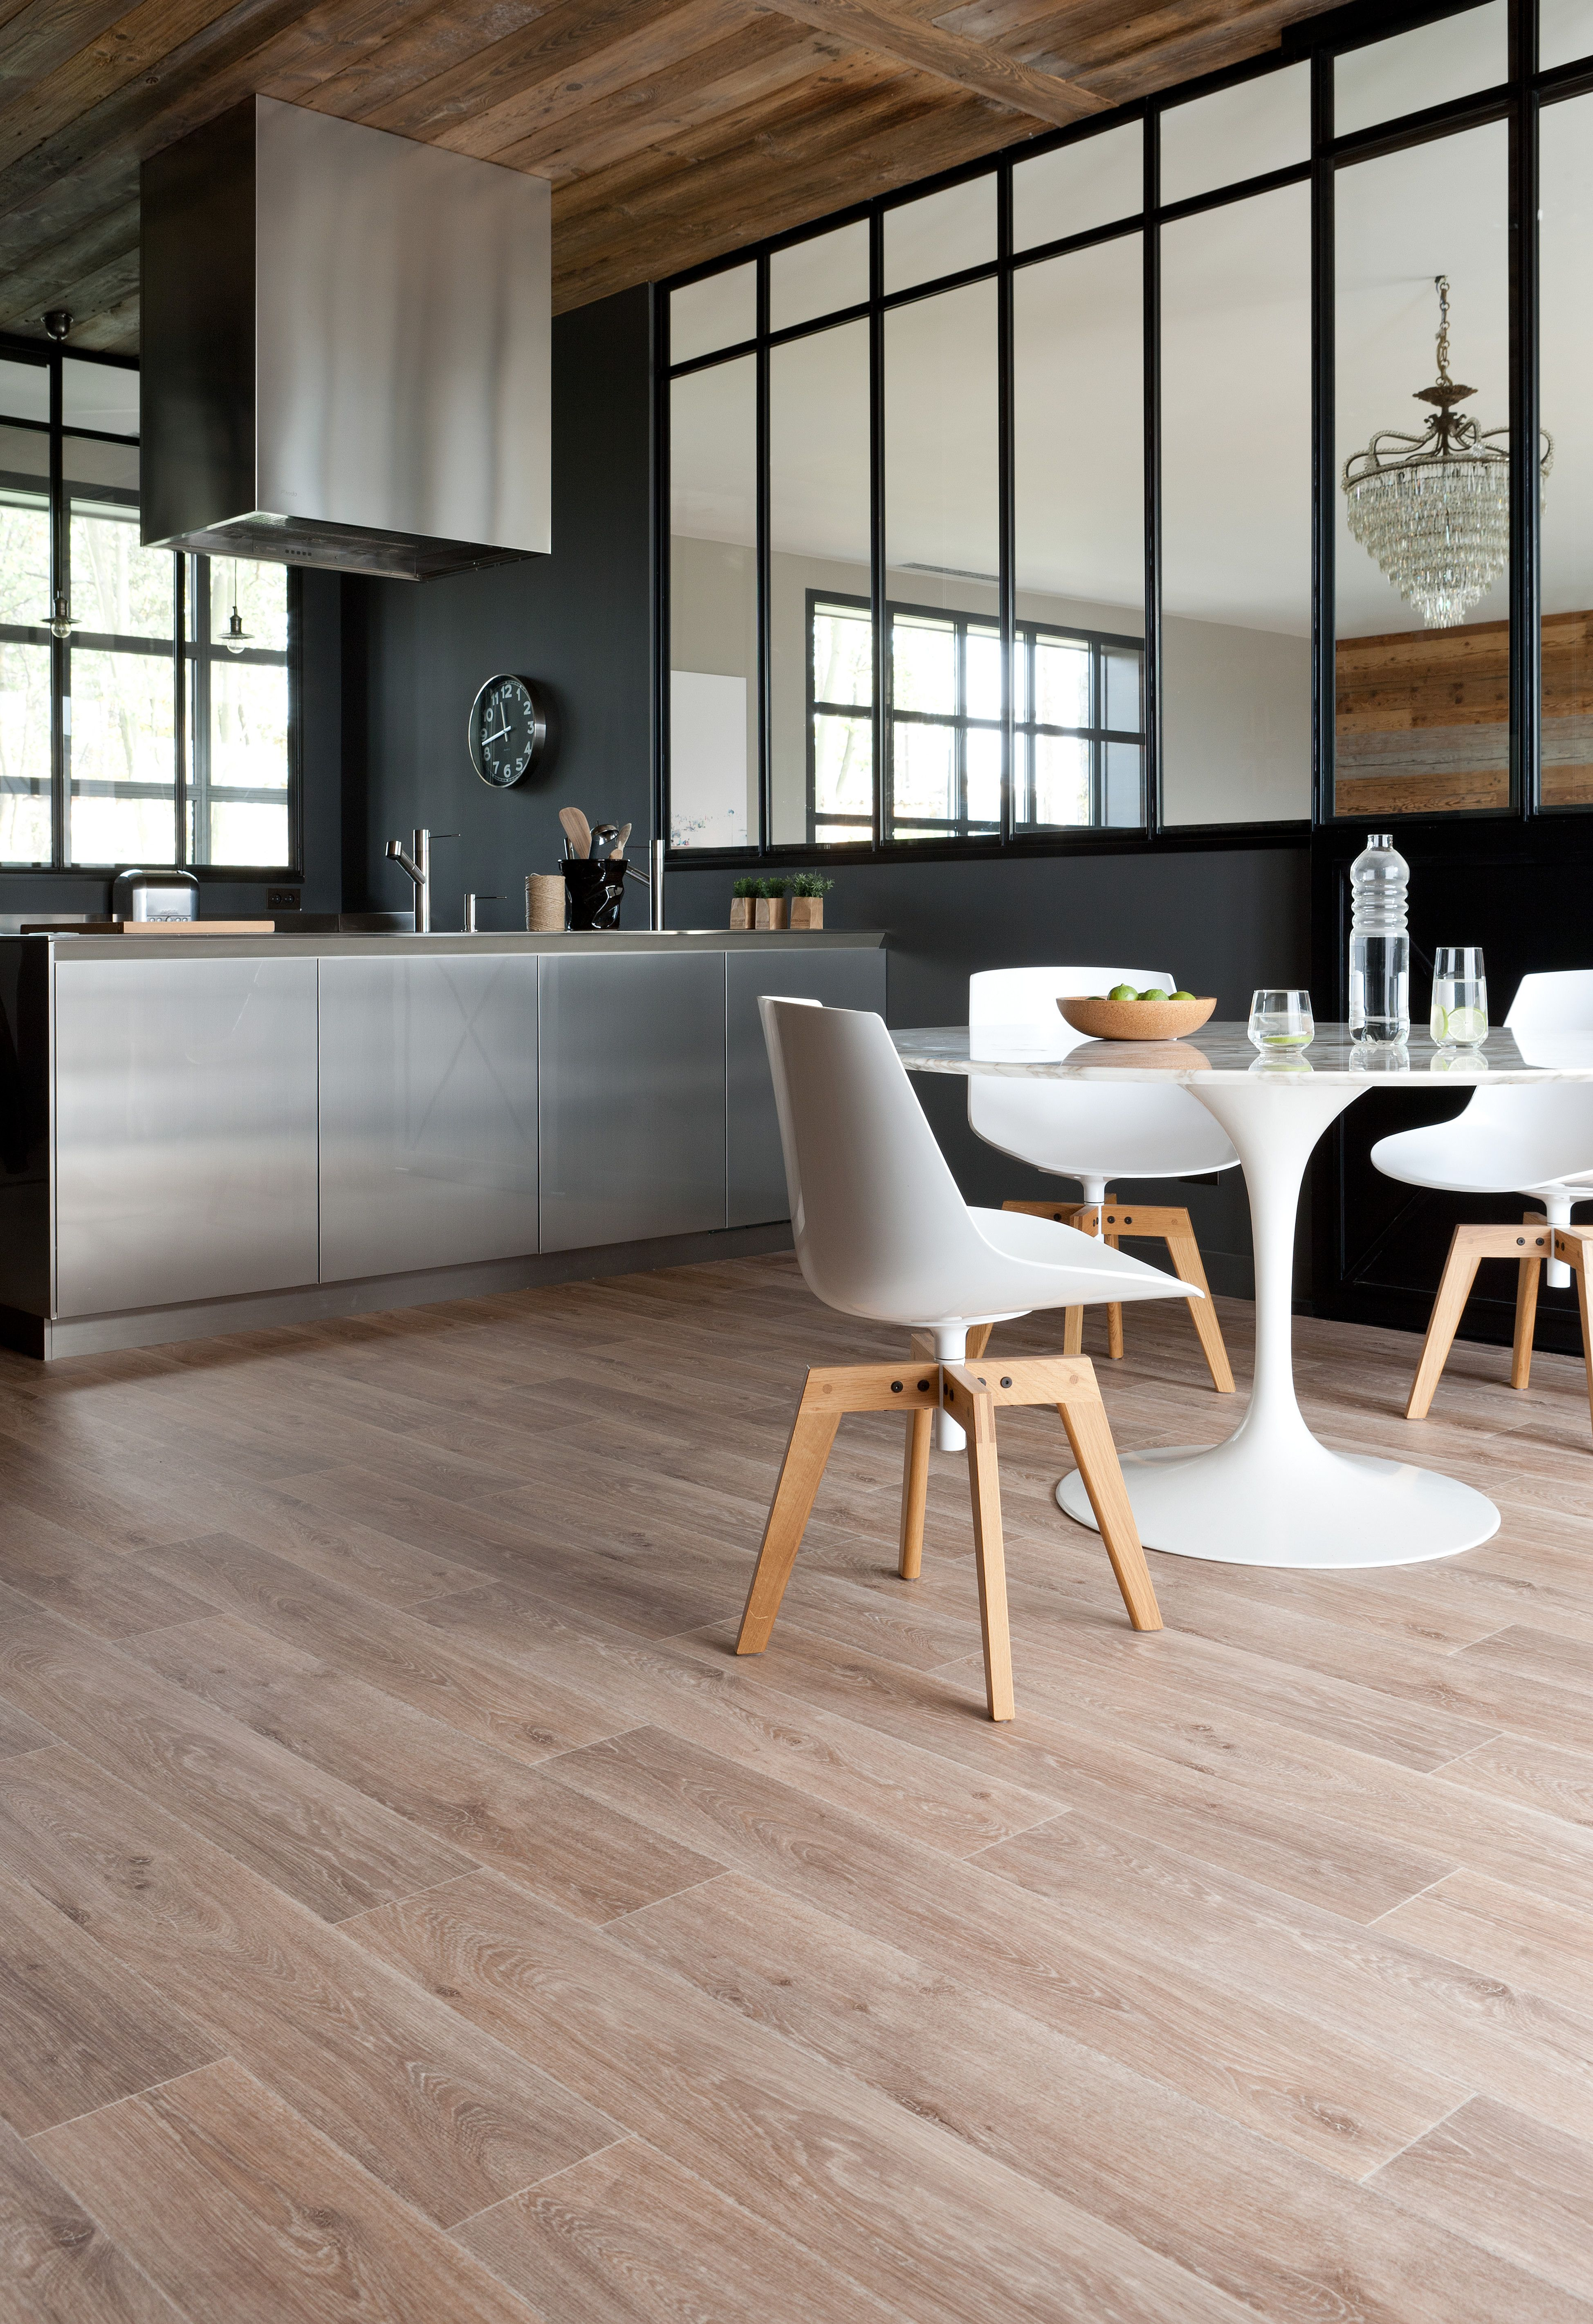 Gerflor Saint Maclou Texline Essence Noma Blond Gerflor Design Flooring